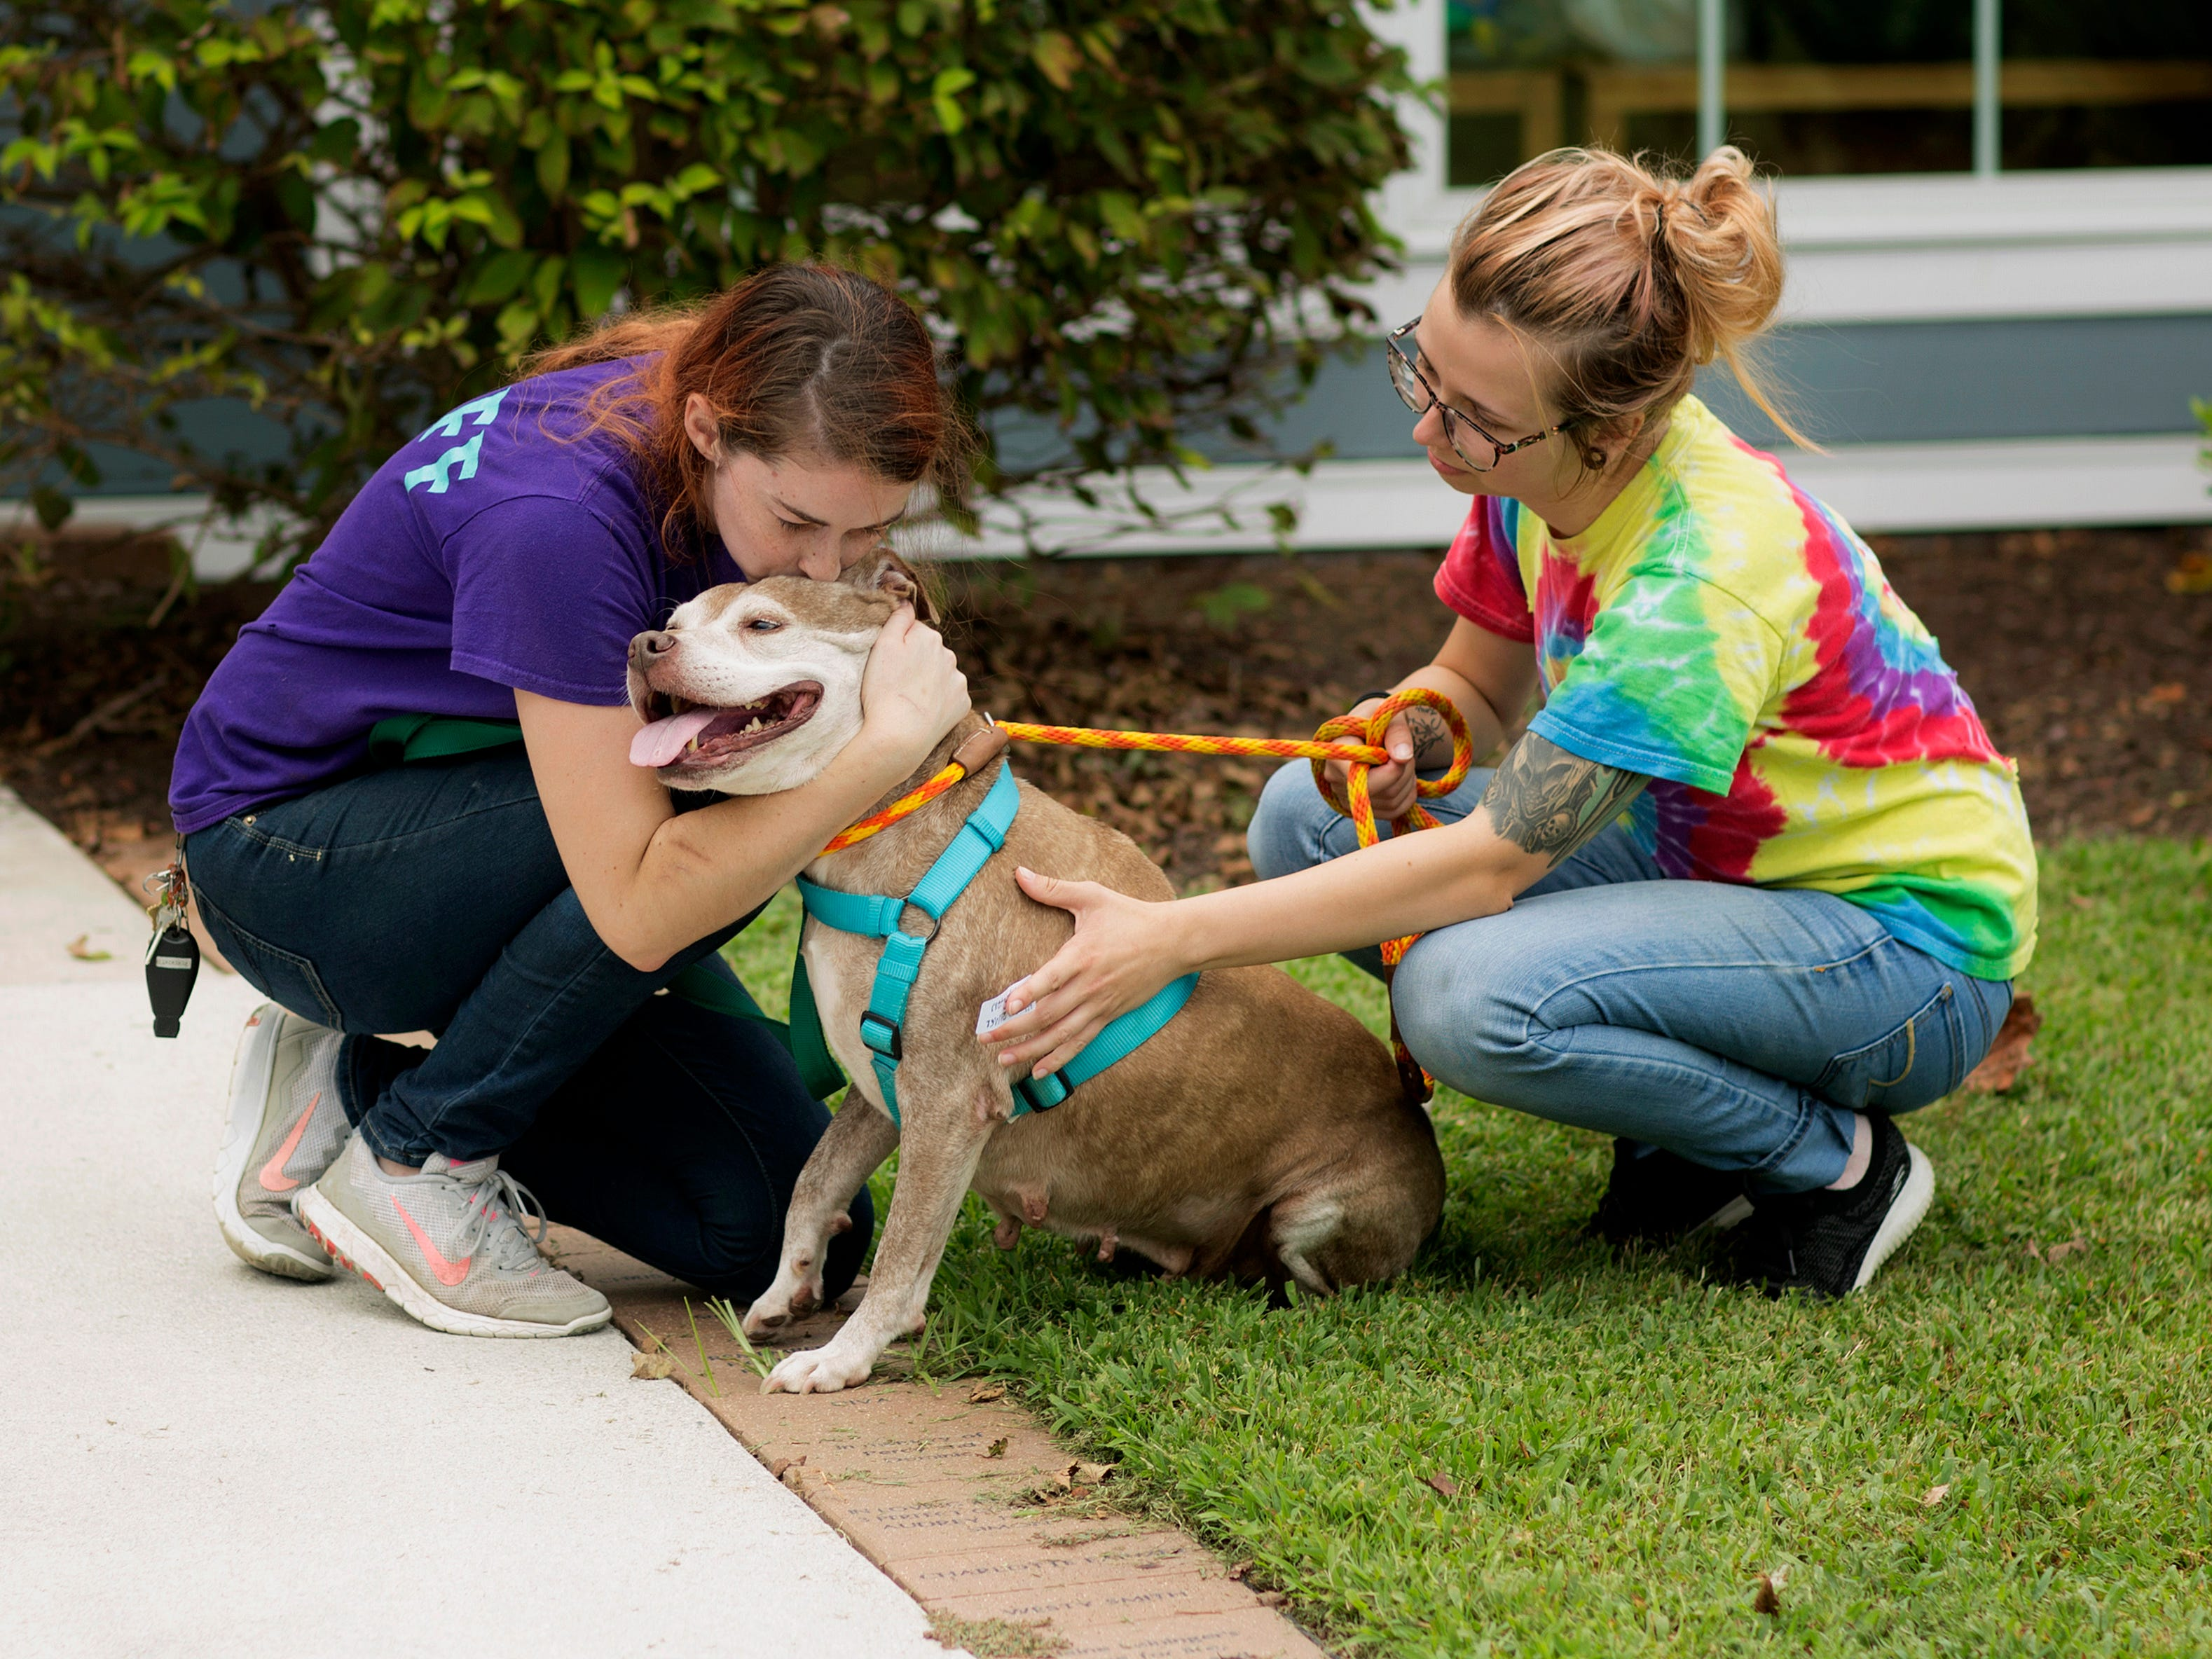 Amanda Glaze says goodbye to Hi-Ho Silver outside the Portsmouth Humane Society, in Portsmouth, Va. The Humane Society of the United States, Animal Rescue Team relocated cats and dogs from the Portsmouth Humane Society in preparation of Hurricane Florence.